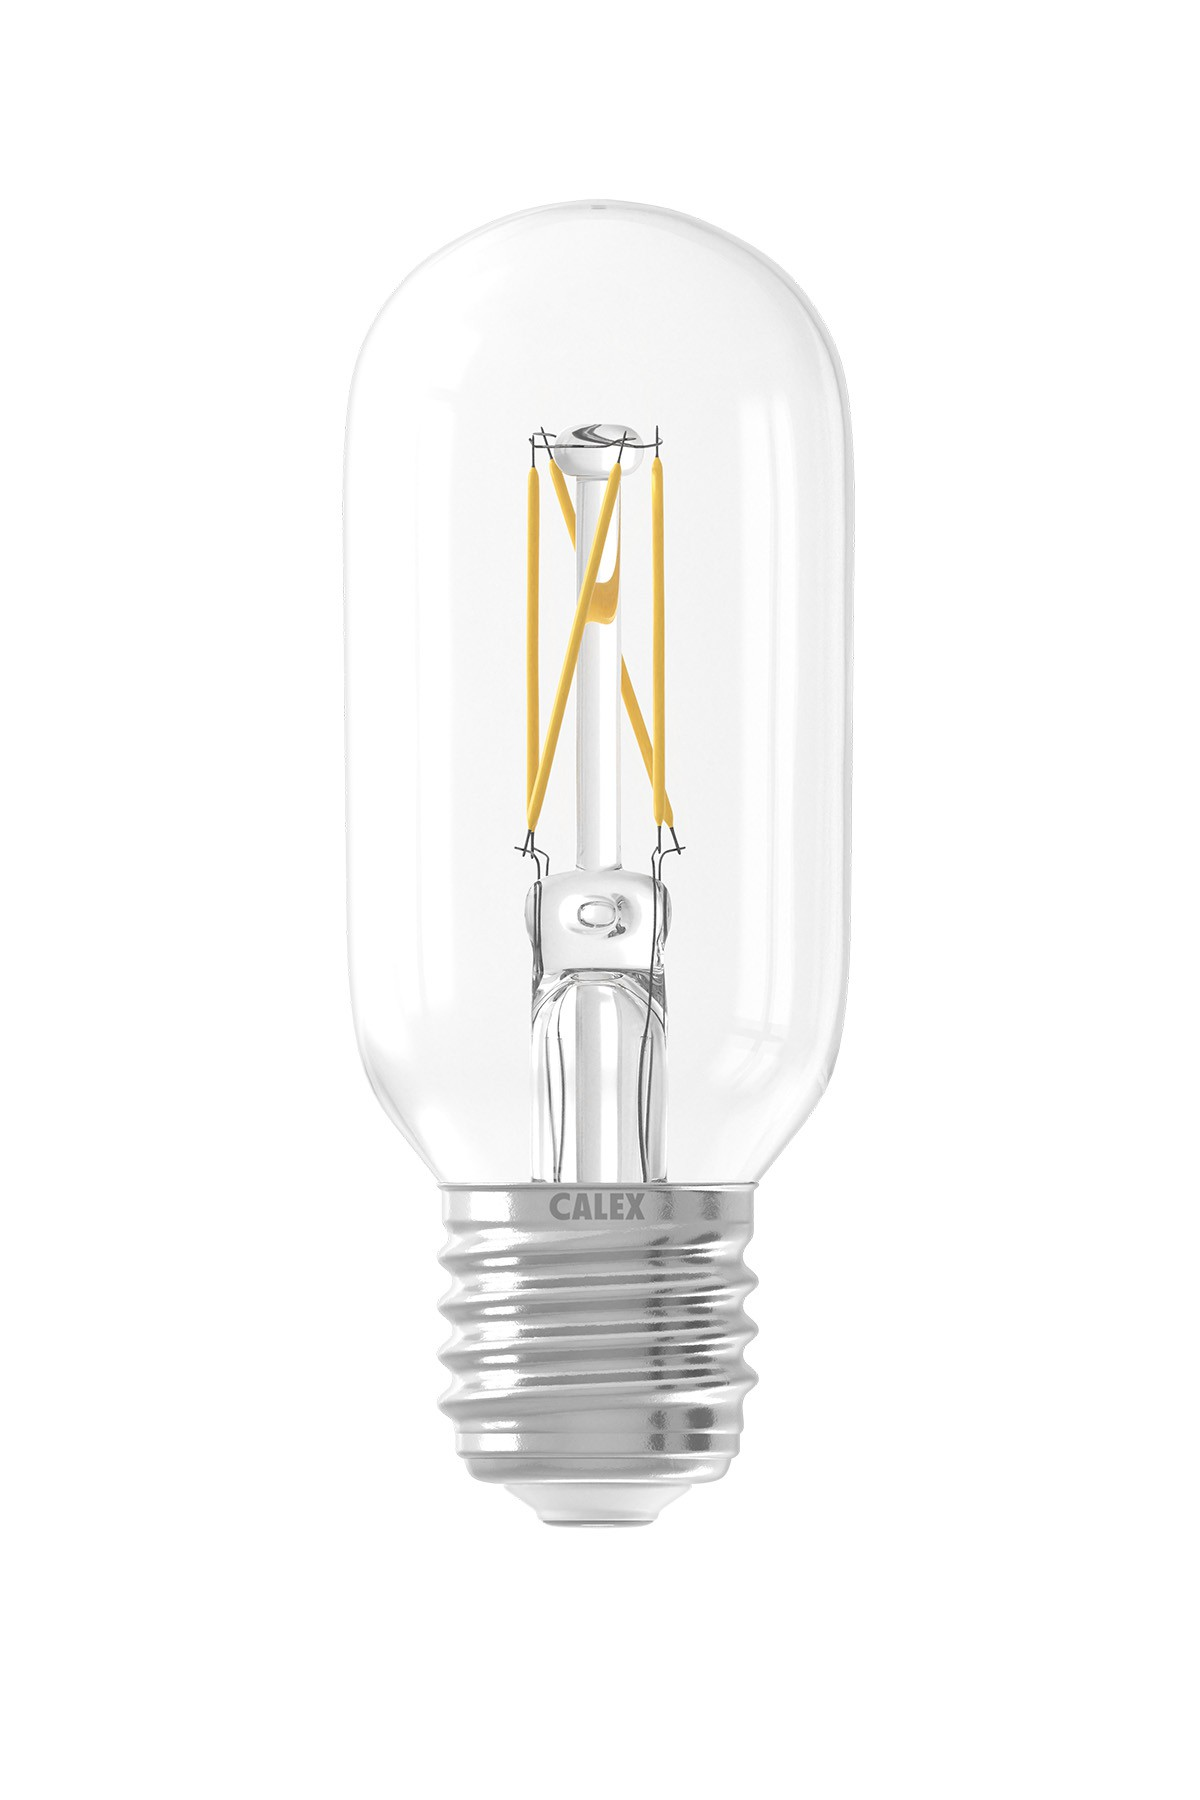 Dimbare Lamp Filament Led Dimbare Tube Lamp 240v 4w E27 Calex